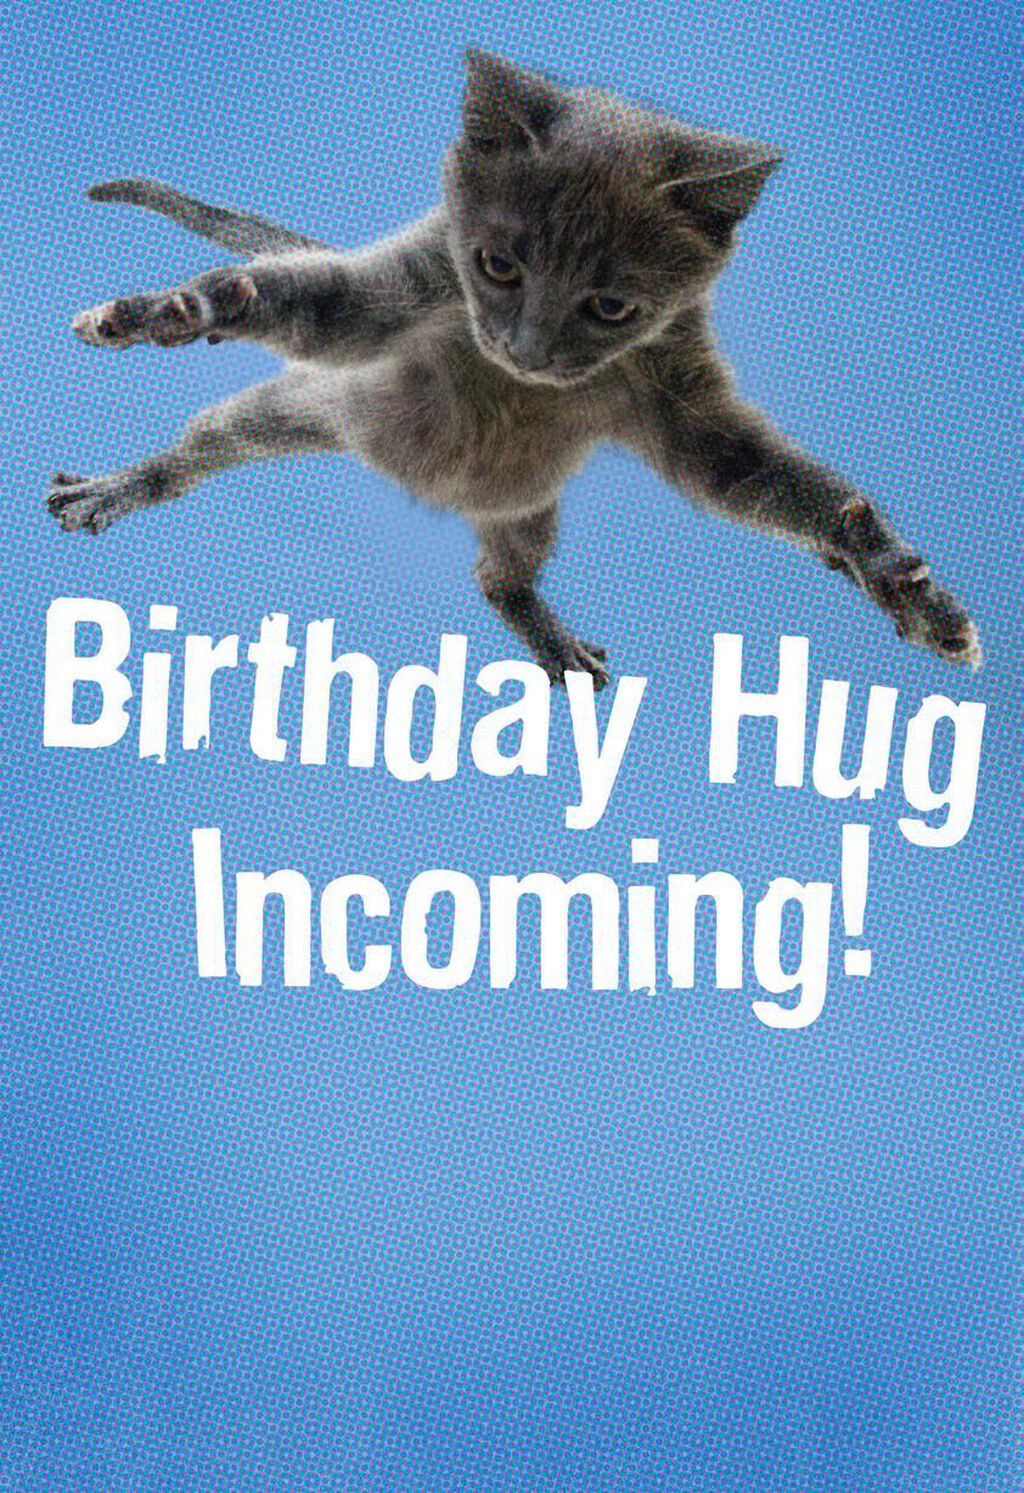 birthday hugs Flying Cat Hug Birthday Card   Greeting Cards   Hallmark birthday hugs